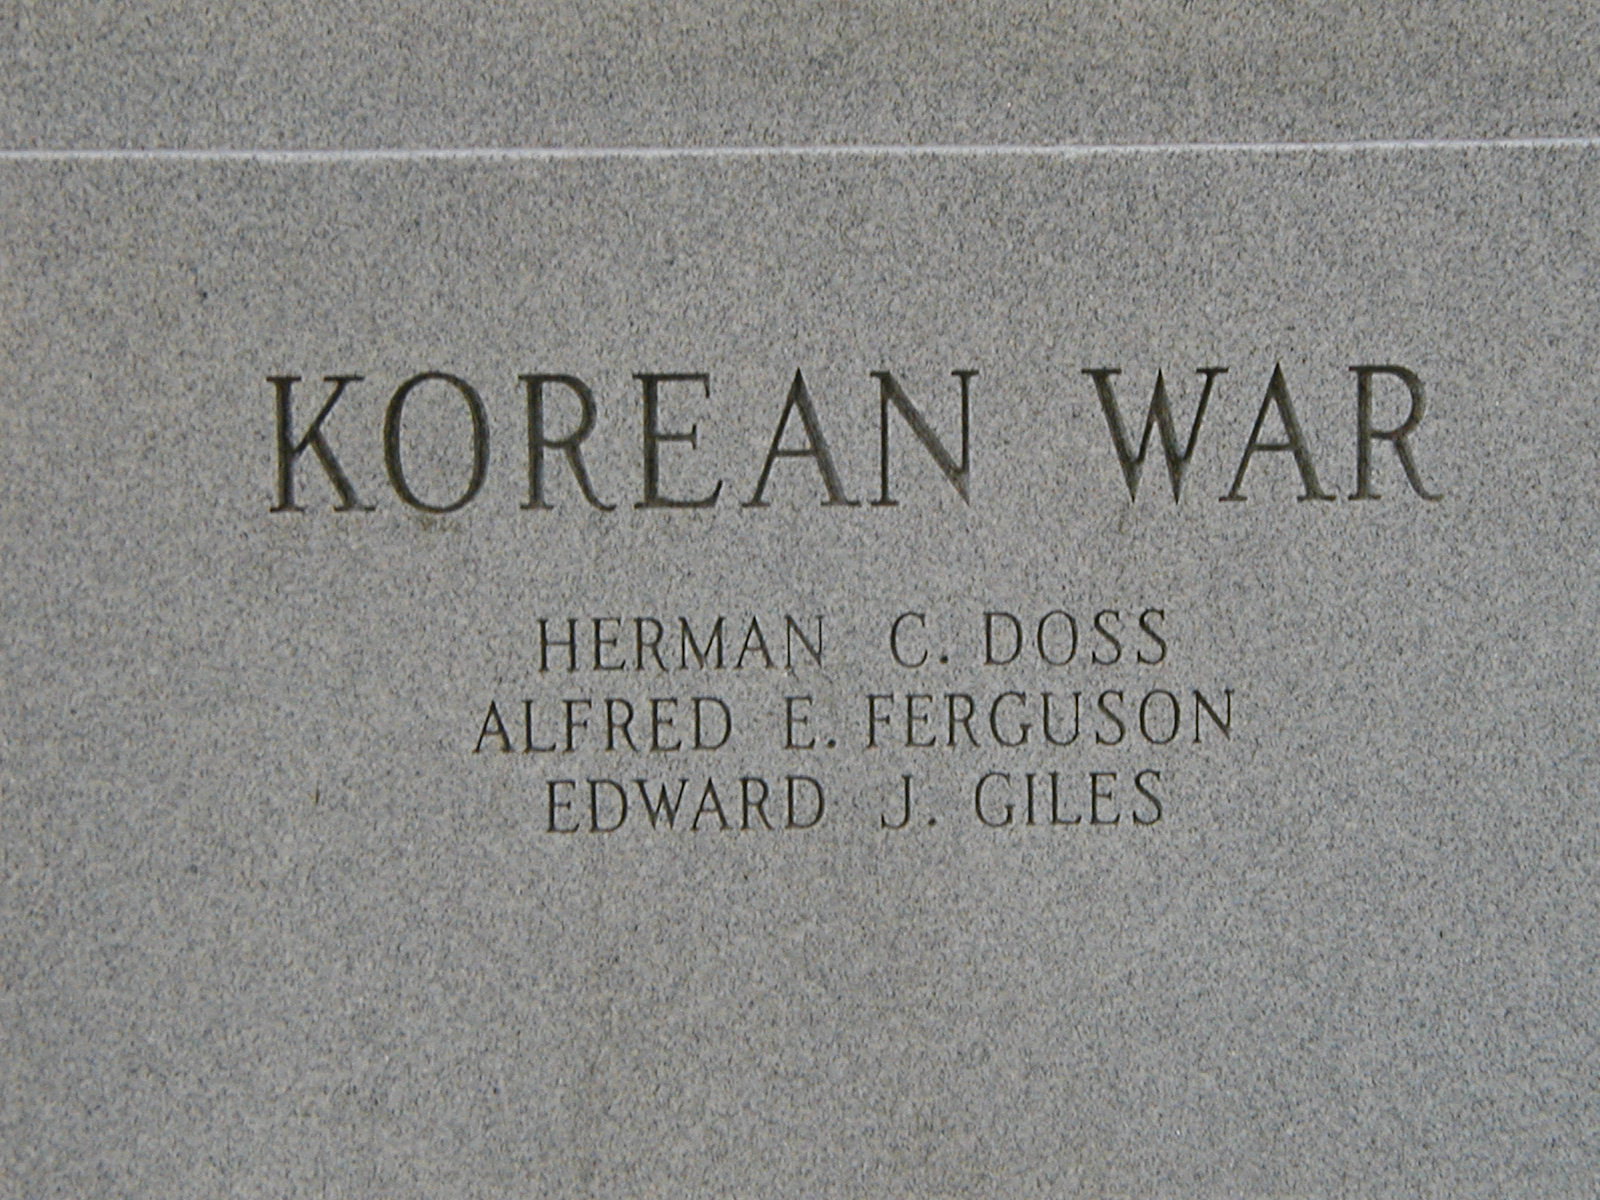 Famous Quotes About Korean War